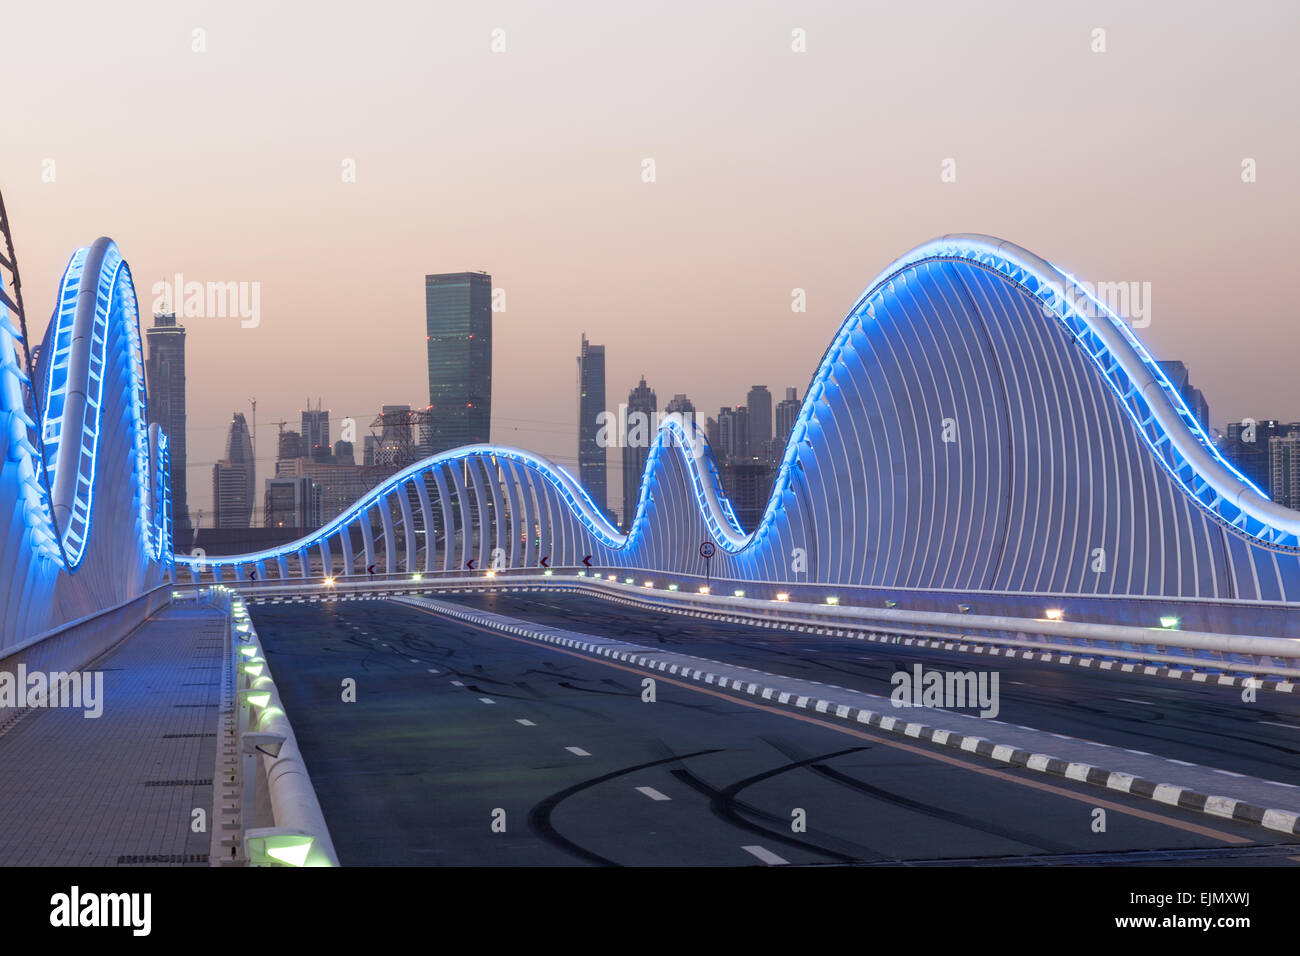 Wave shaped Meydan Bridge in Dubai illuminated at night. December 13, 2014 in Dubai, United Arab Emirates - Stock Image